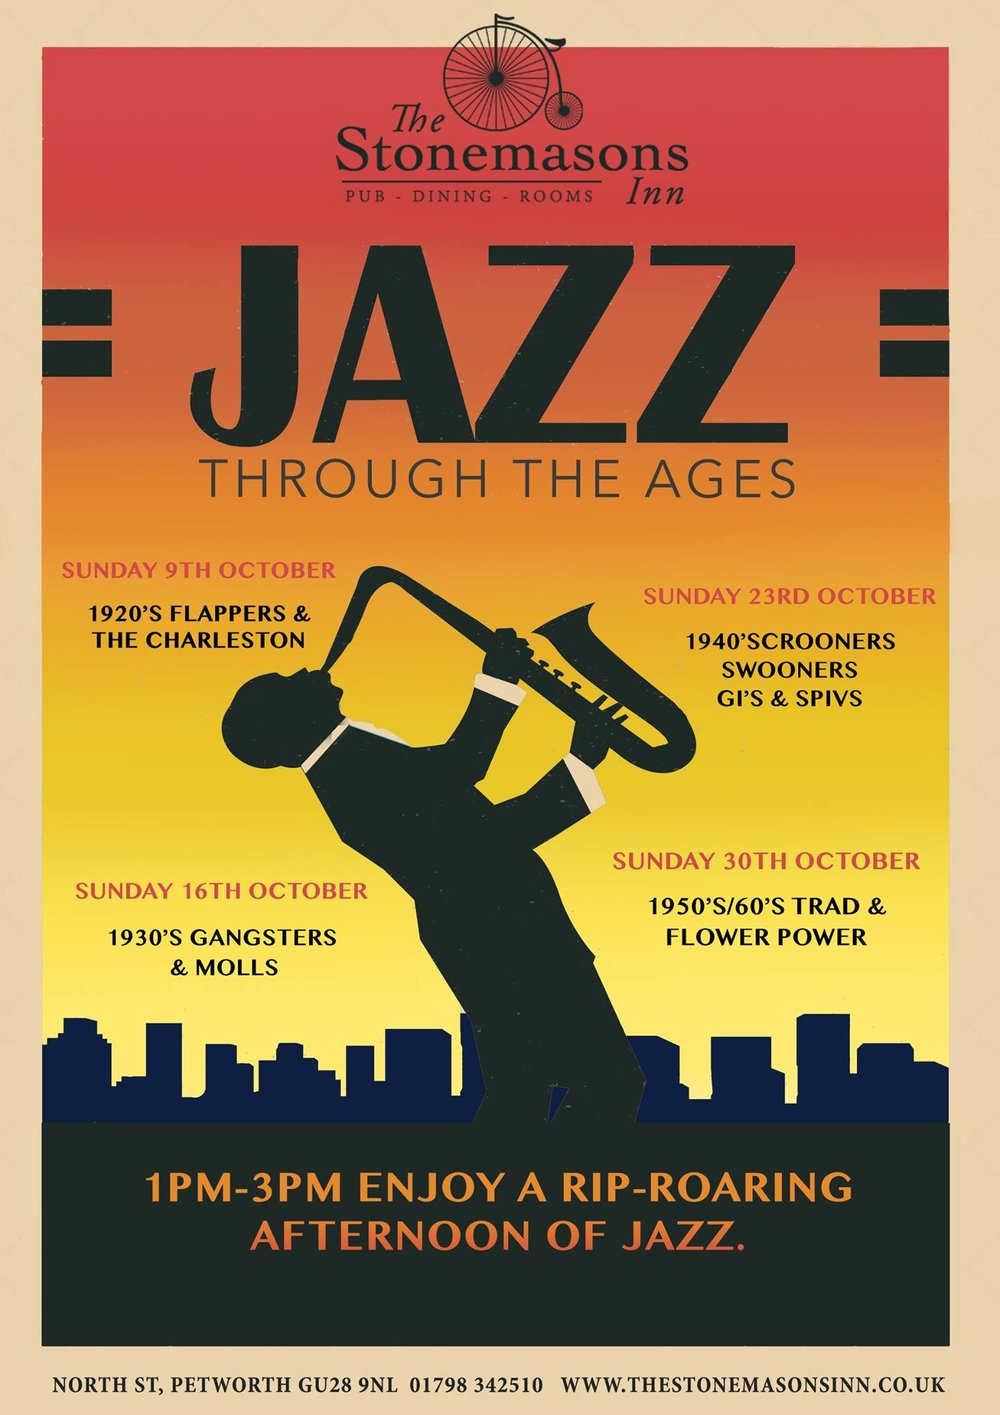 Jazz Afternoon at The Stonemasons Inn